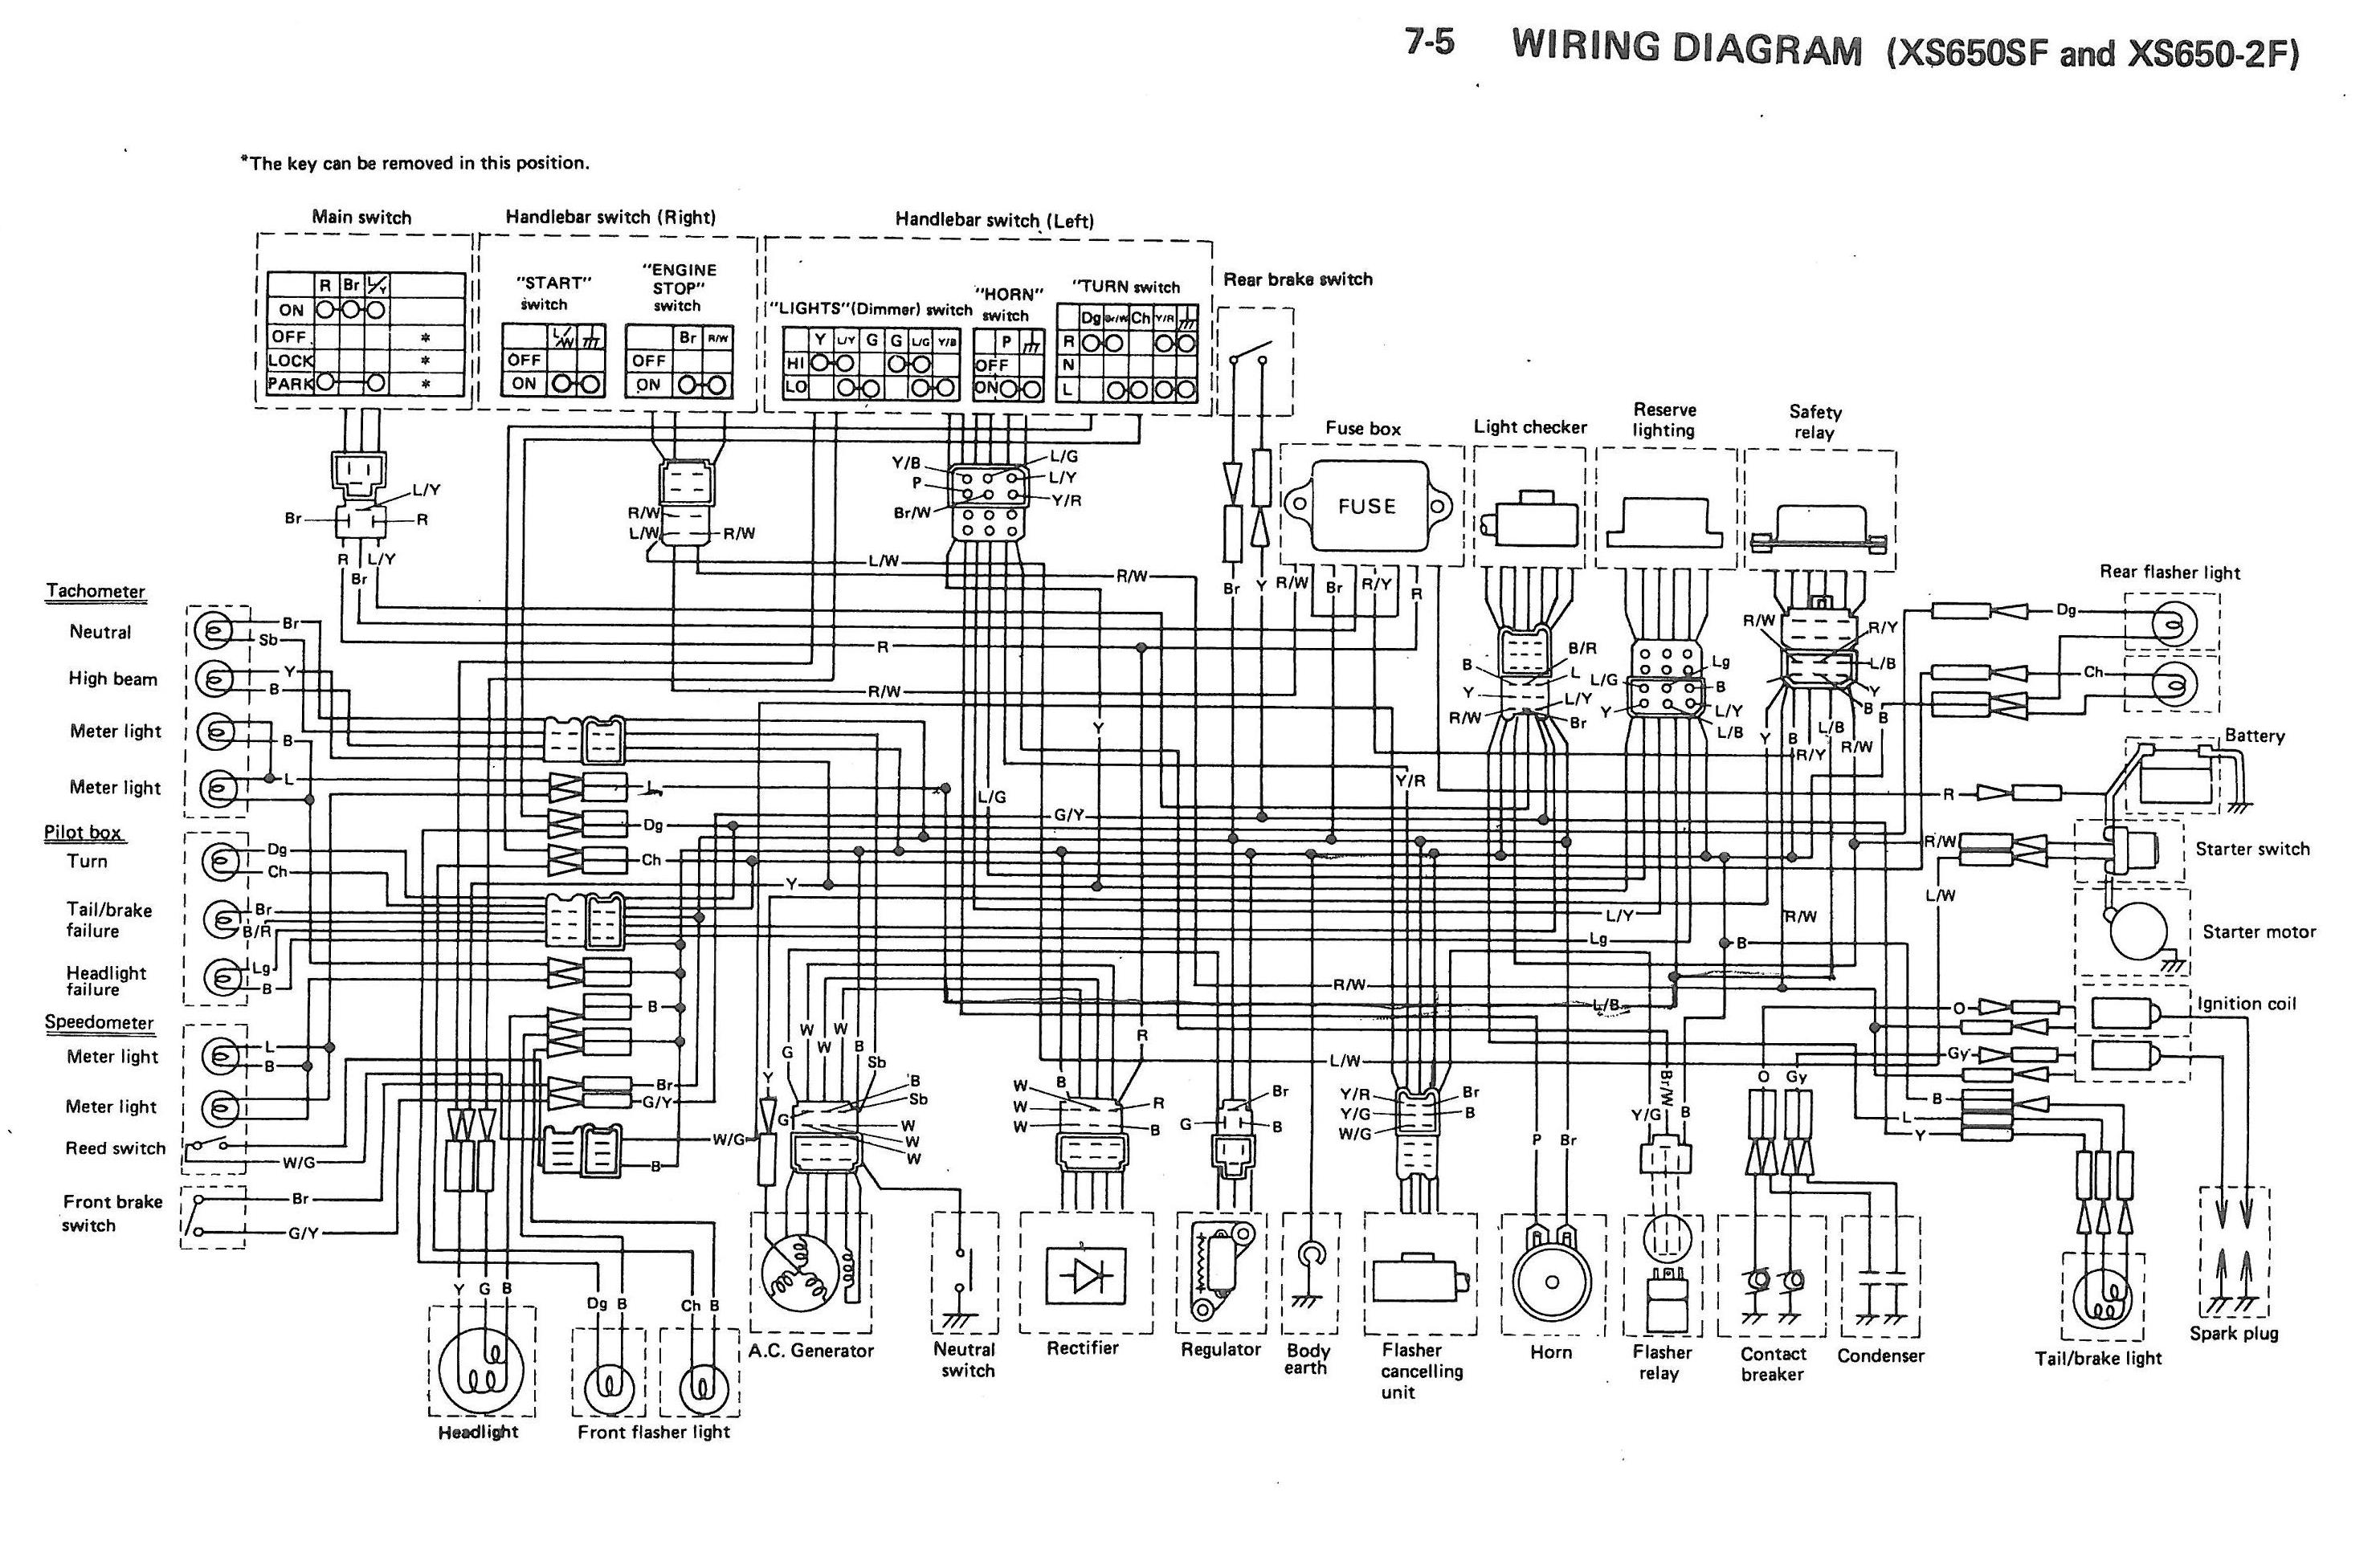 1972 Xs650 Chopper Wiring Harness | Wiring Diagram on